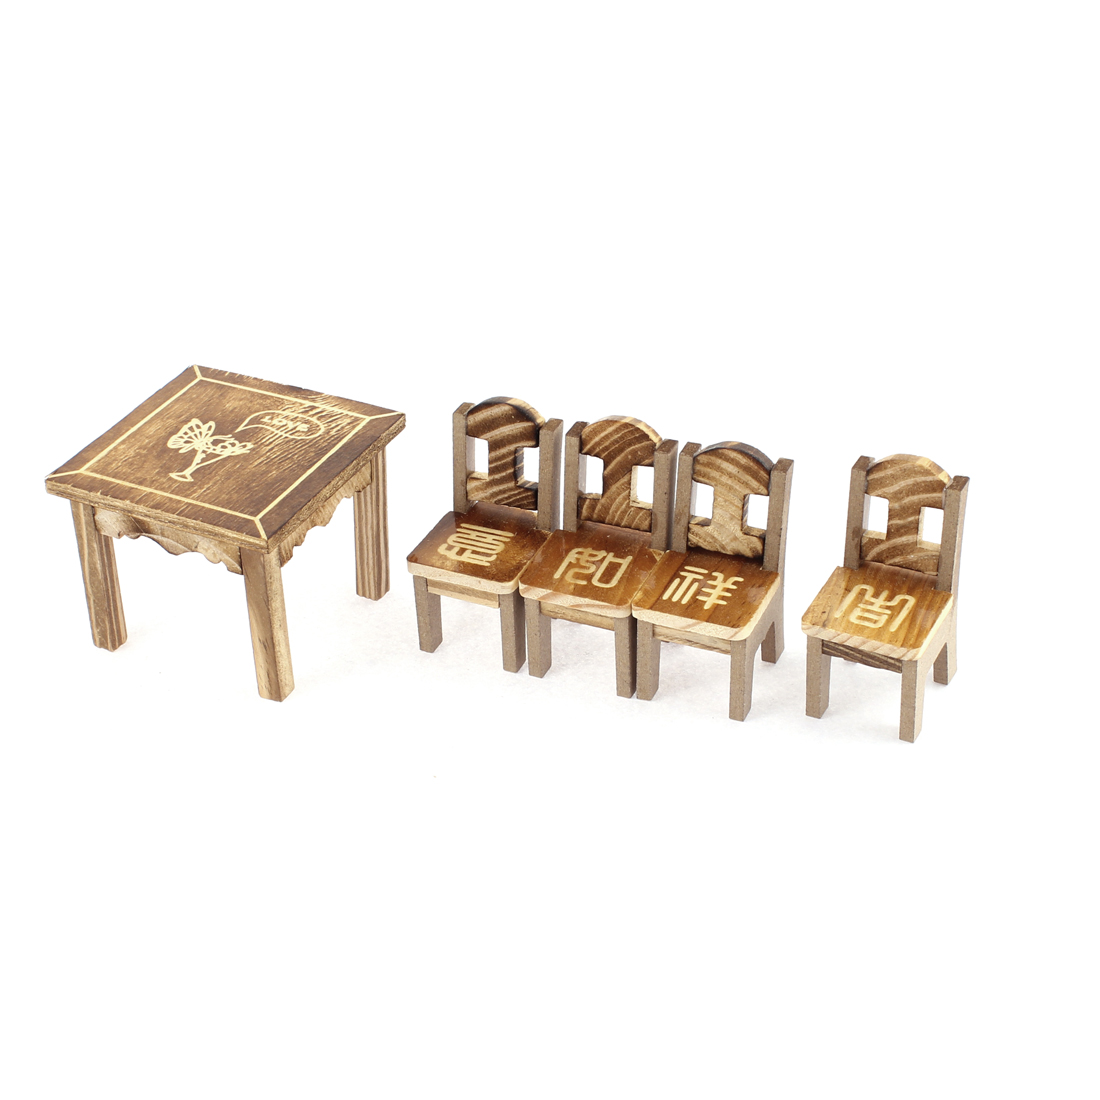 Home Office Wooden Desktop Decoration Vase Printed Craft Table Chair Set